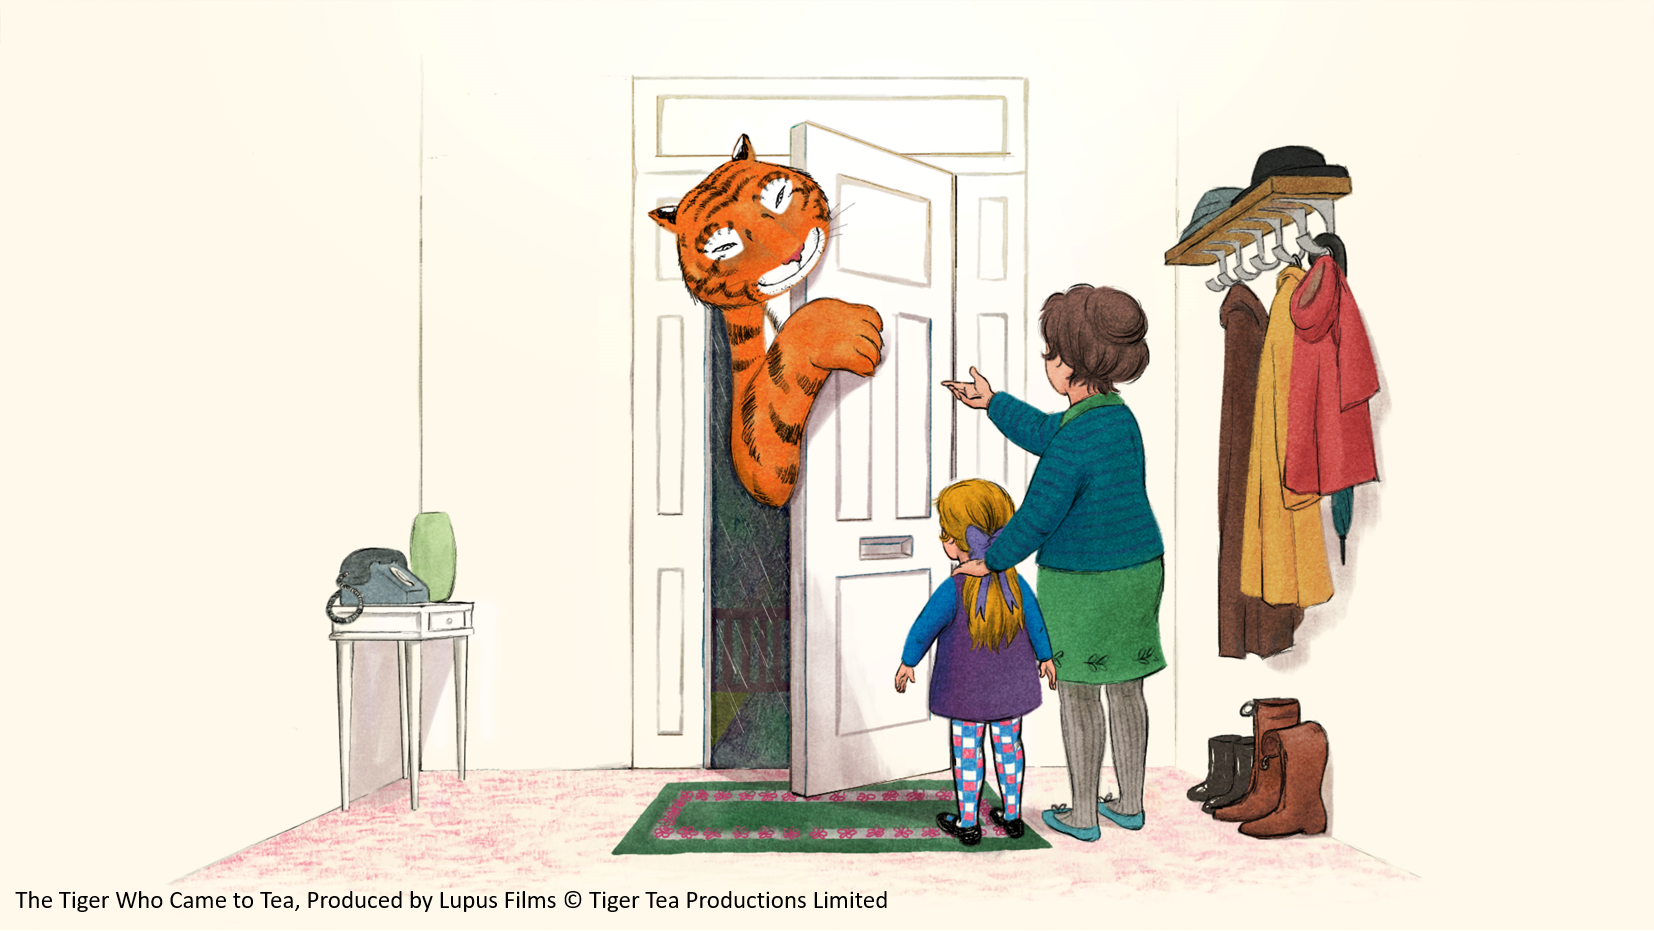 2The Tiger Who Came to Tea, Produced by Lupus Films © Tiger Tea Productions Limited